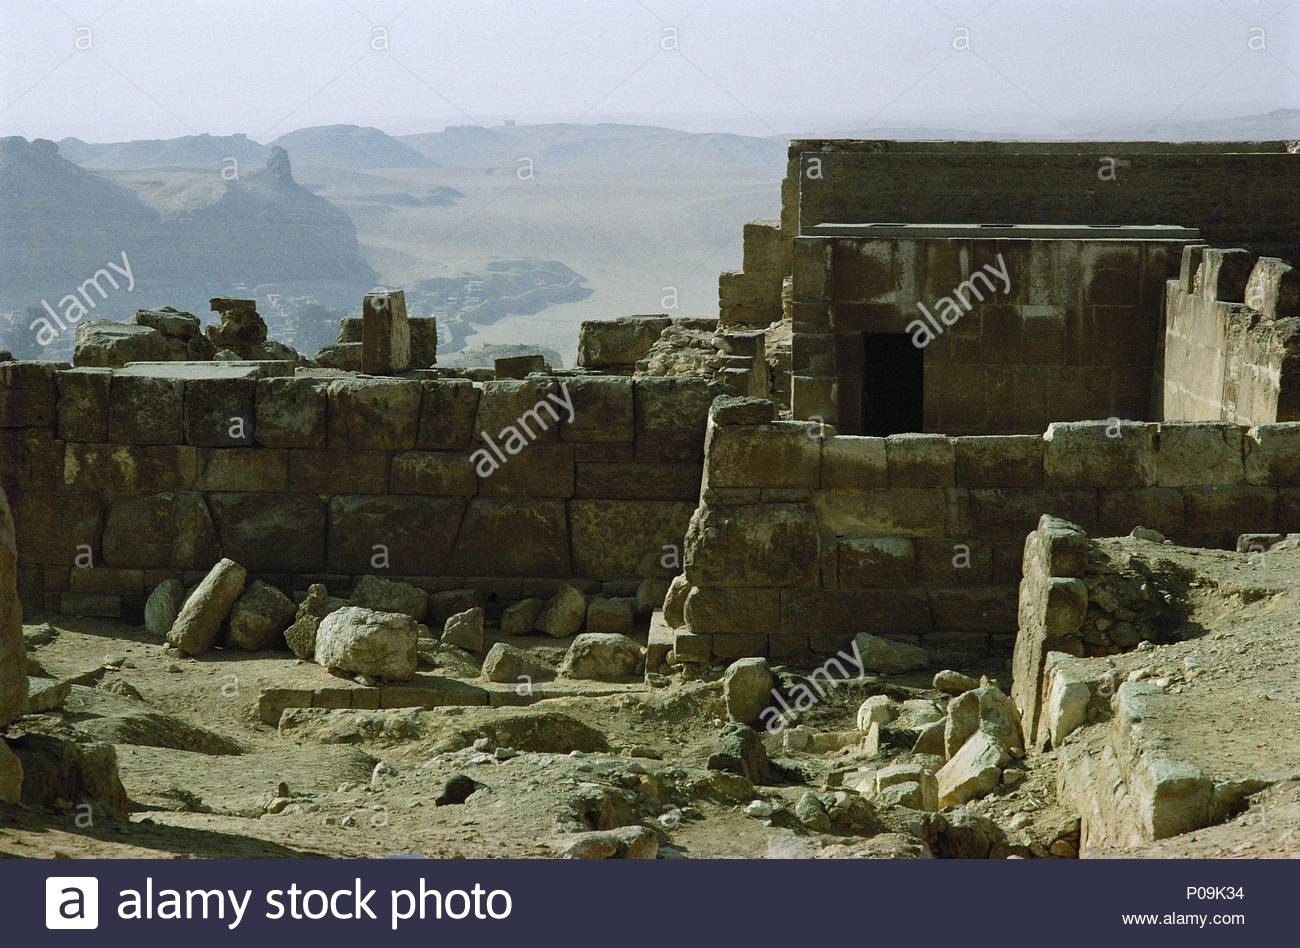 Remains of the Sun Temple of Pharaoh Nyuserre (5th dynasty, 2494-2345 BCE).  View of the Western Desert. Location: Temple, Abu Ghurab, Egypt.